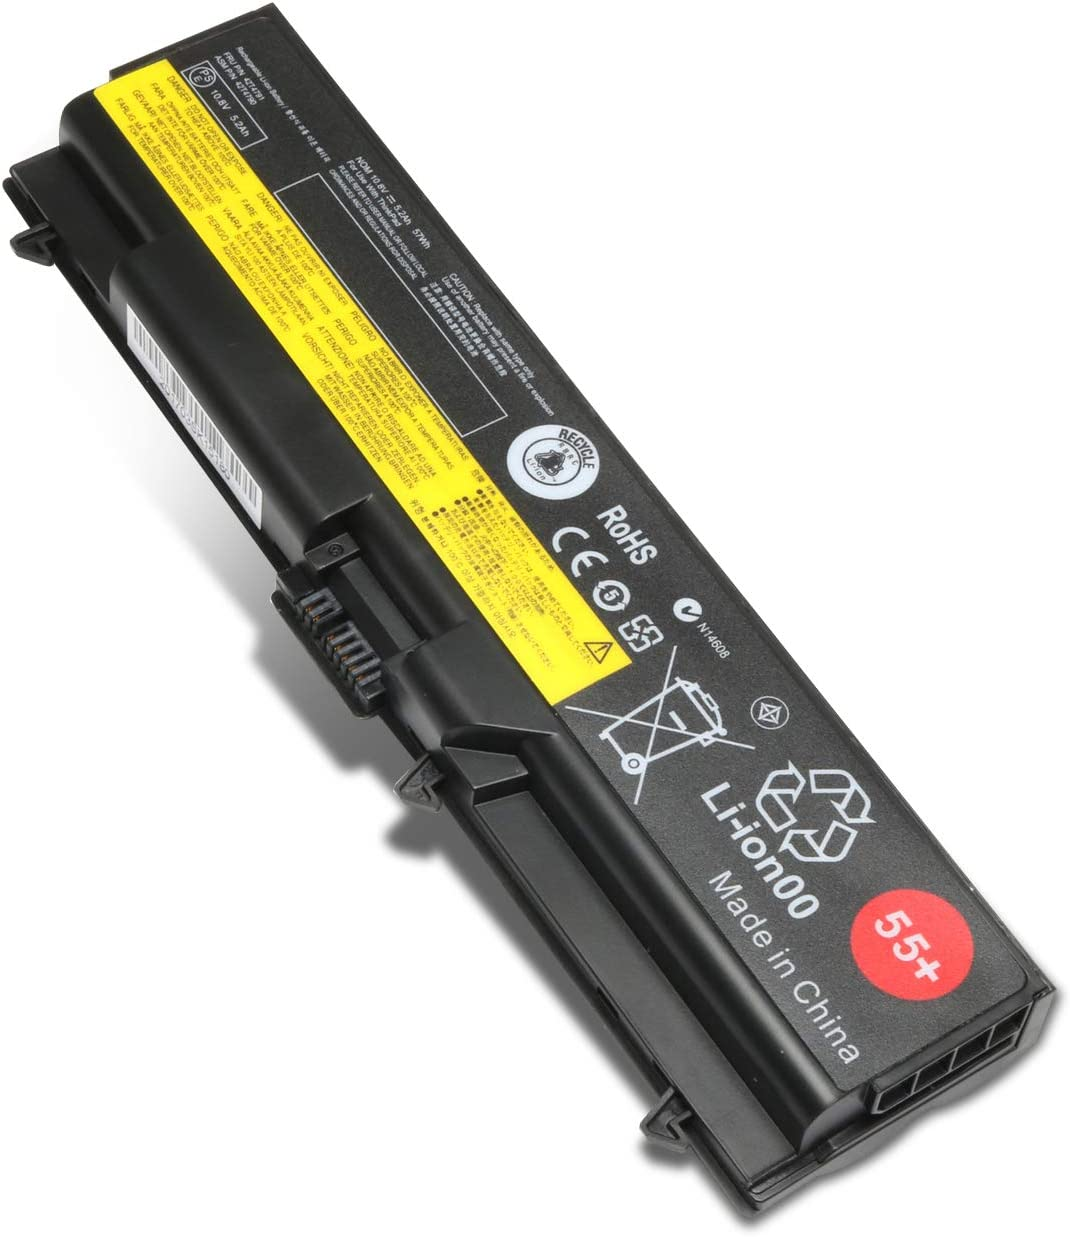 New SL410 42t4753 Replacement Laptop Battery for Lenovo ThinkPad T410 T510 SL510 T510 T520 E40 E420 E520 Series fits P/N 42T4795 42T4793 42T4791 42T4737 57WH 55+